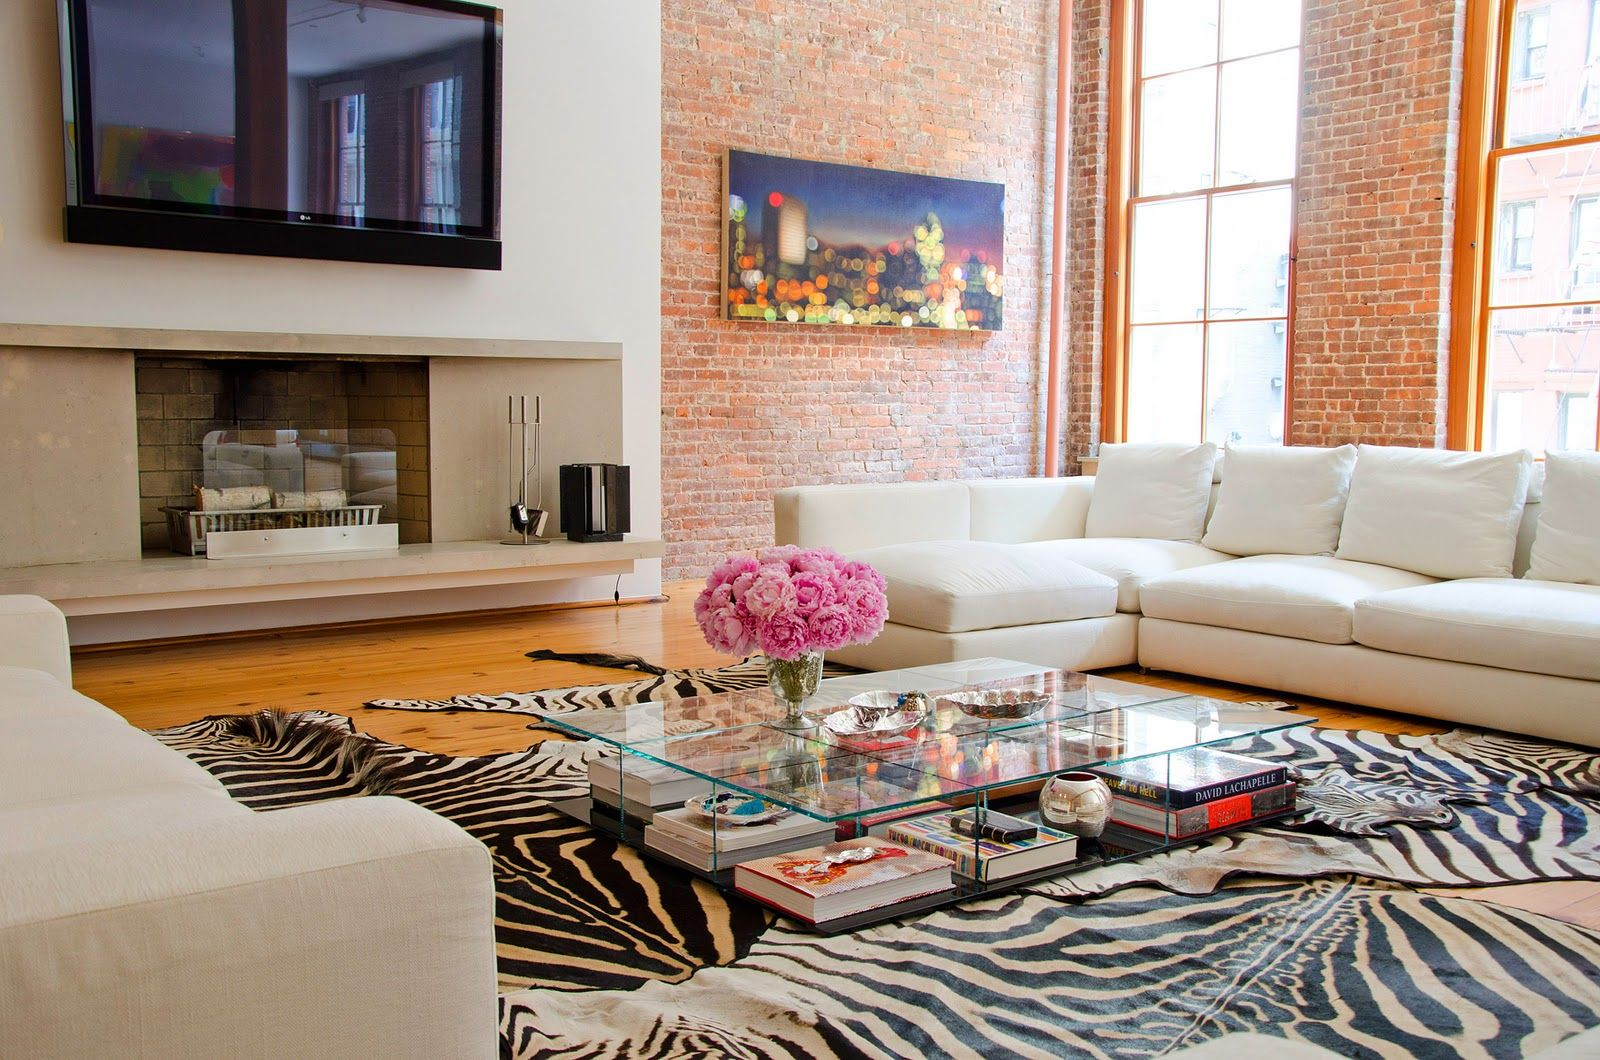 coffee table books interior design - 1000+ images about rend Spotting Zebra Print on Pinterest ...